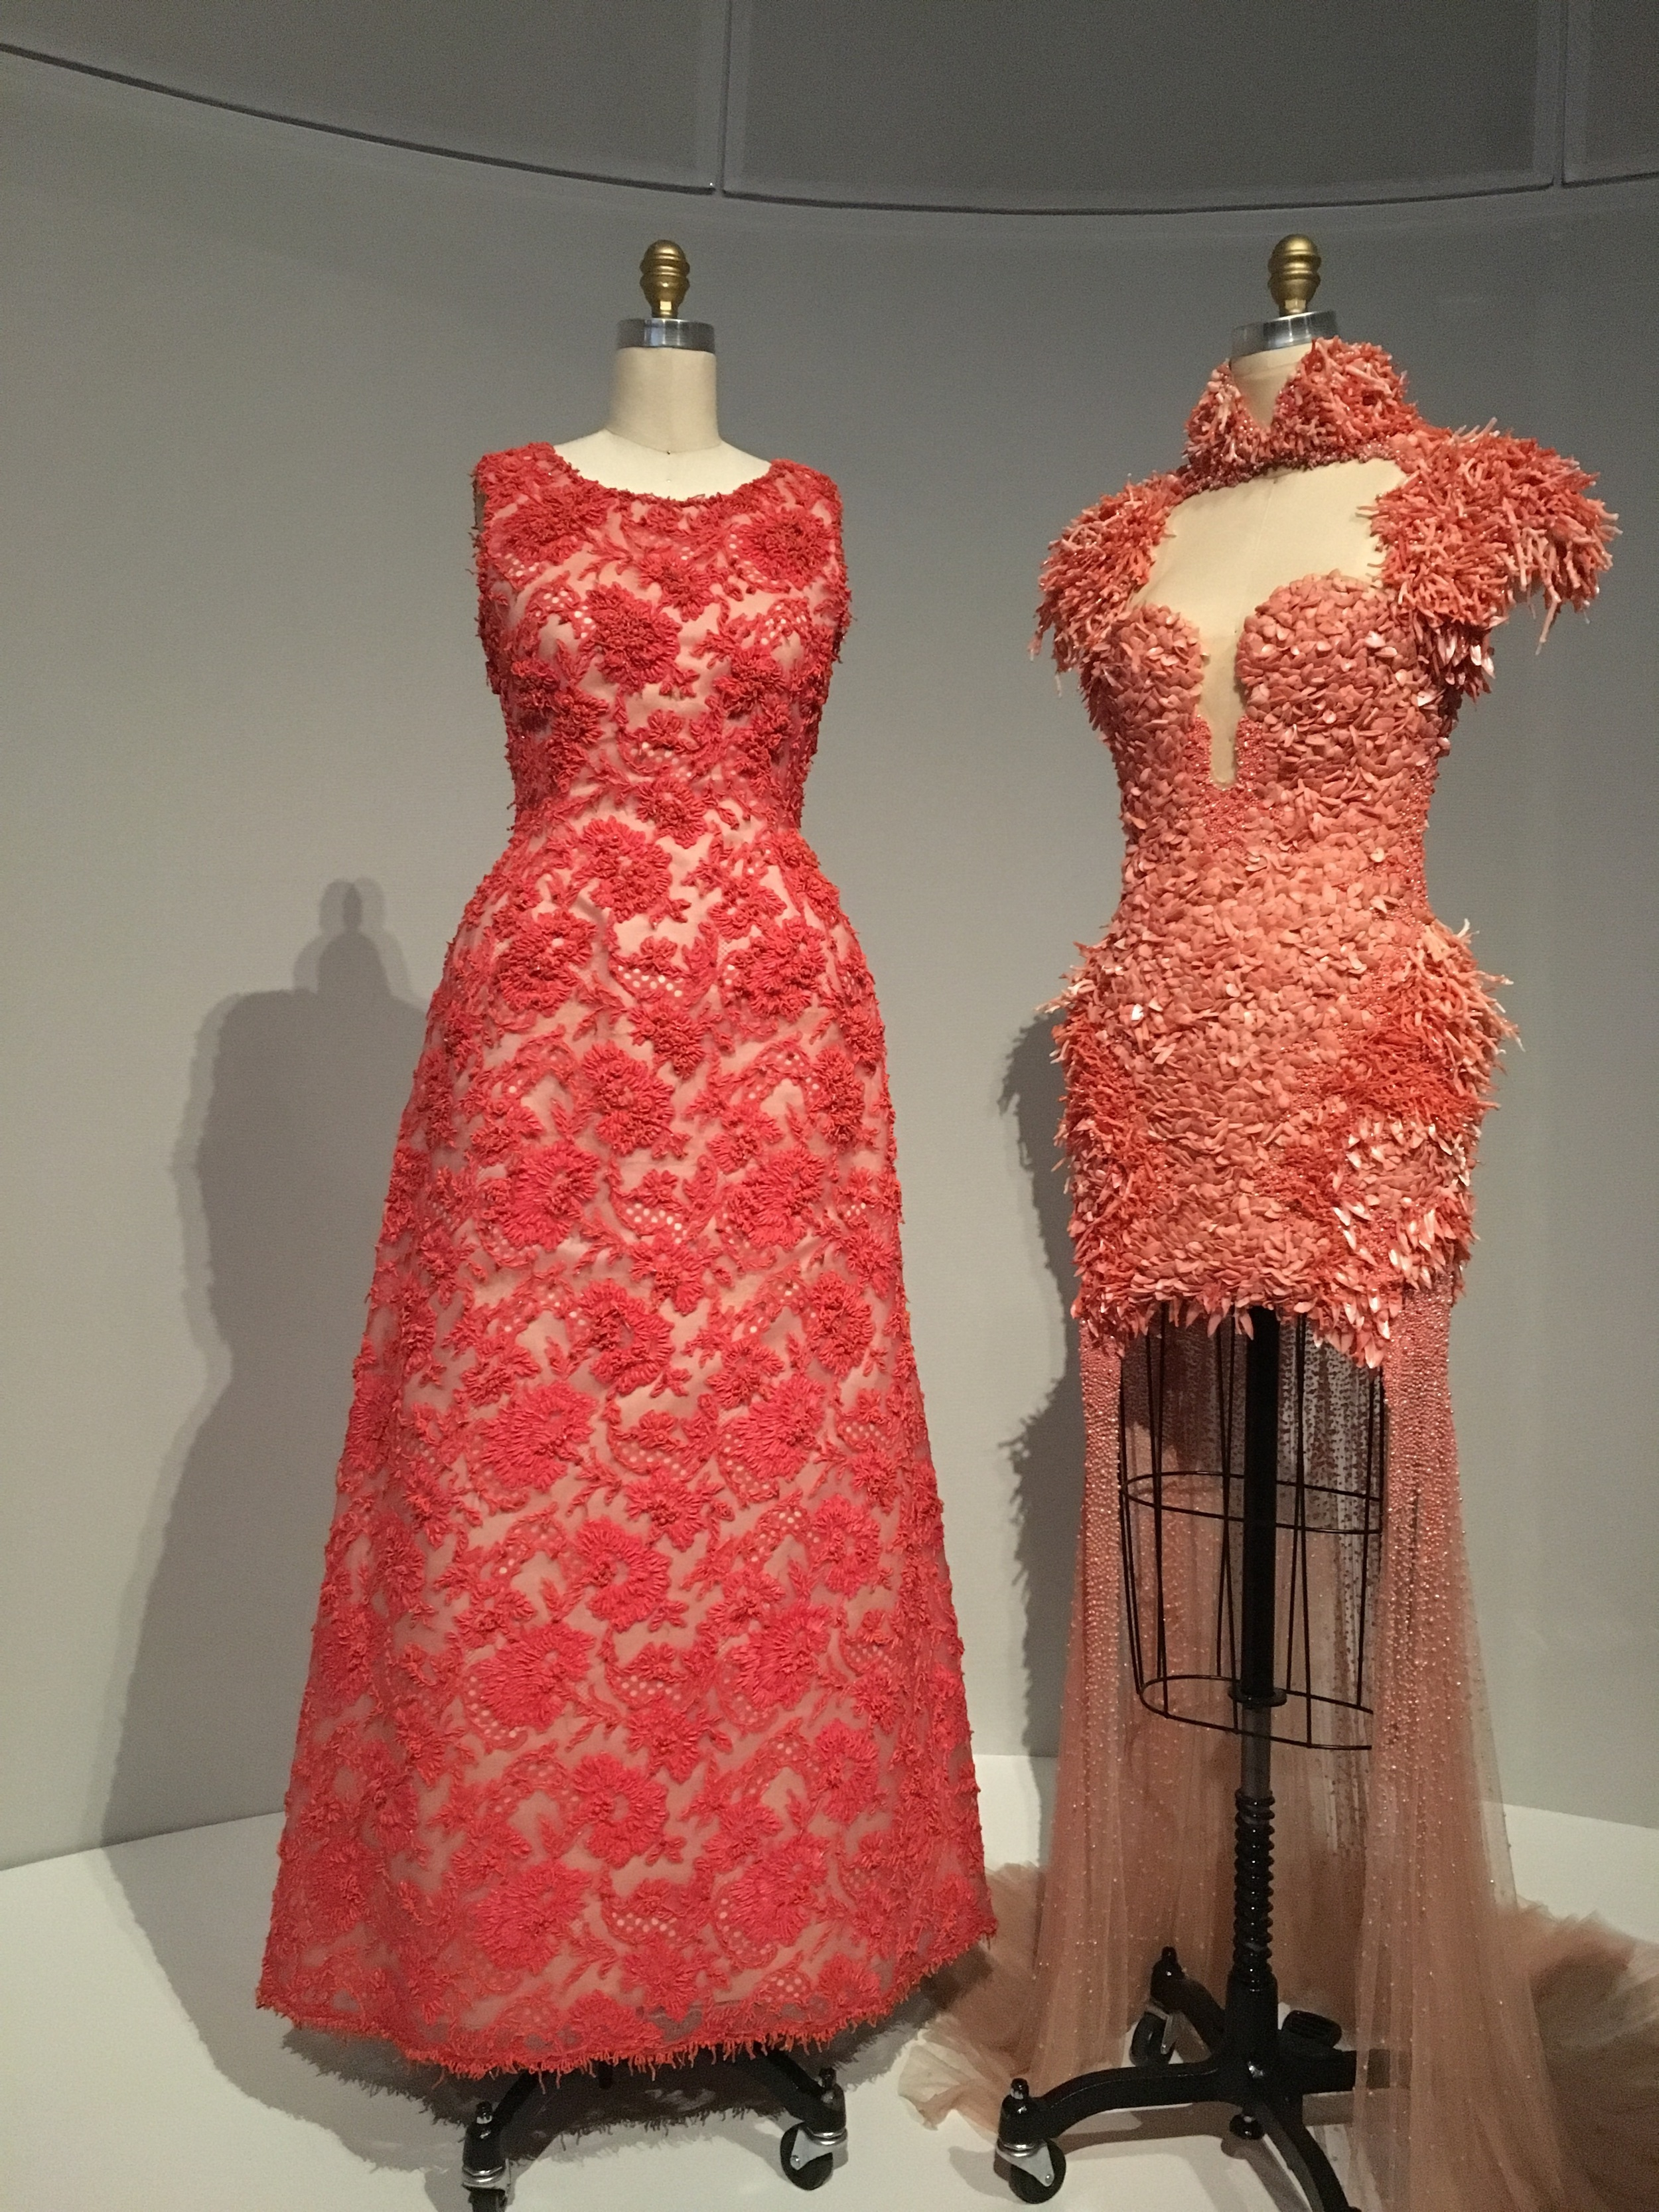 House of Givenchy  Hubert de Givenchy  1963, haute couture  Hand sewn red-orange cotton Mechlin-type lace hand-embroidered with red-orange beads, tinsel, and pieces of coral